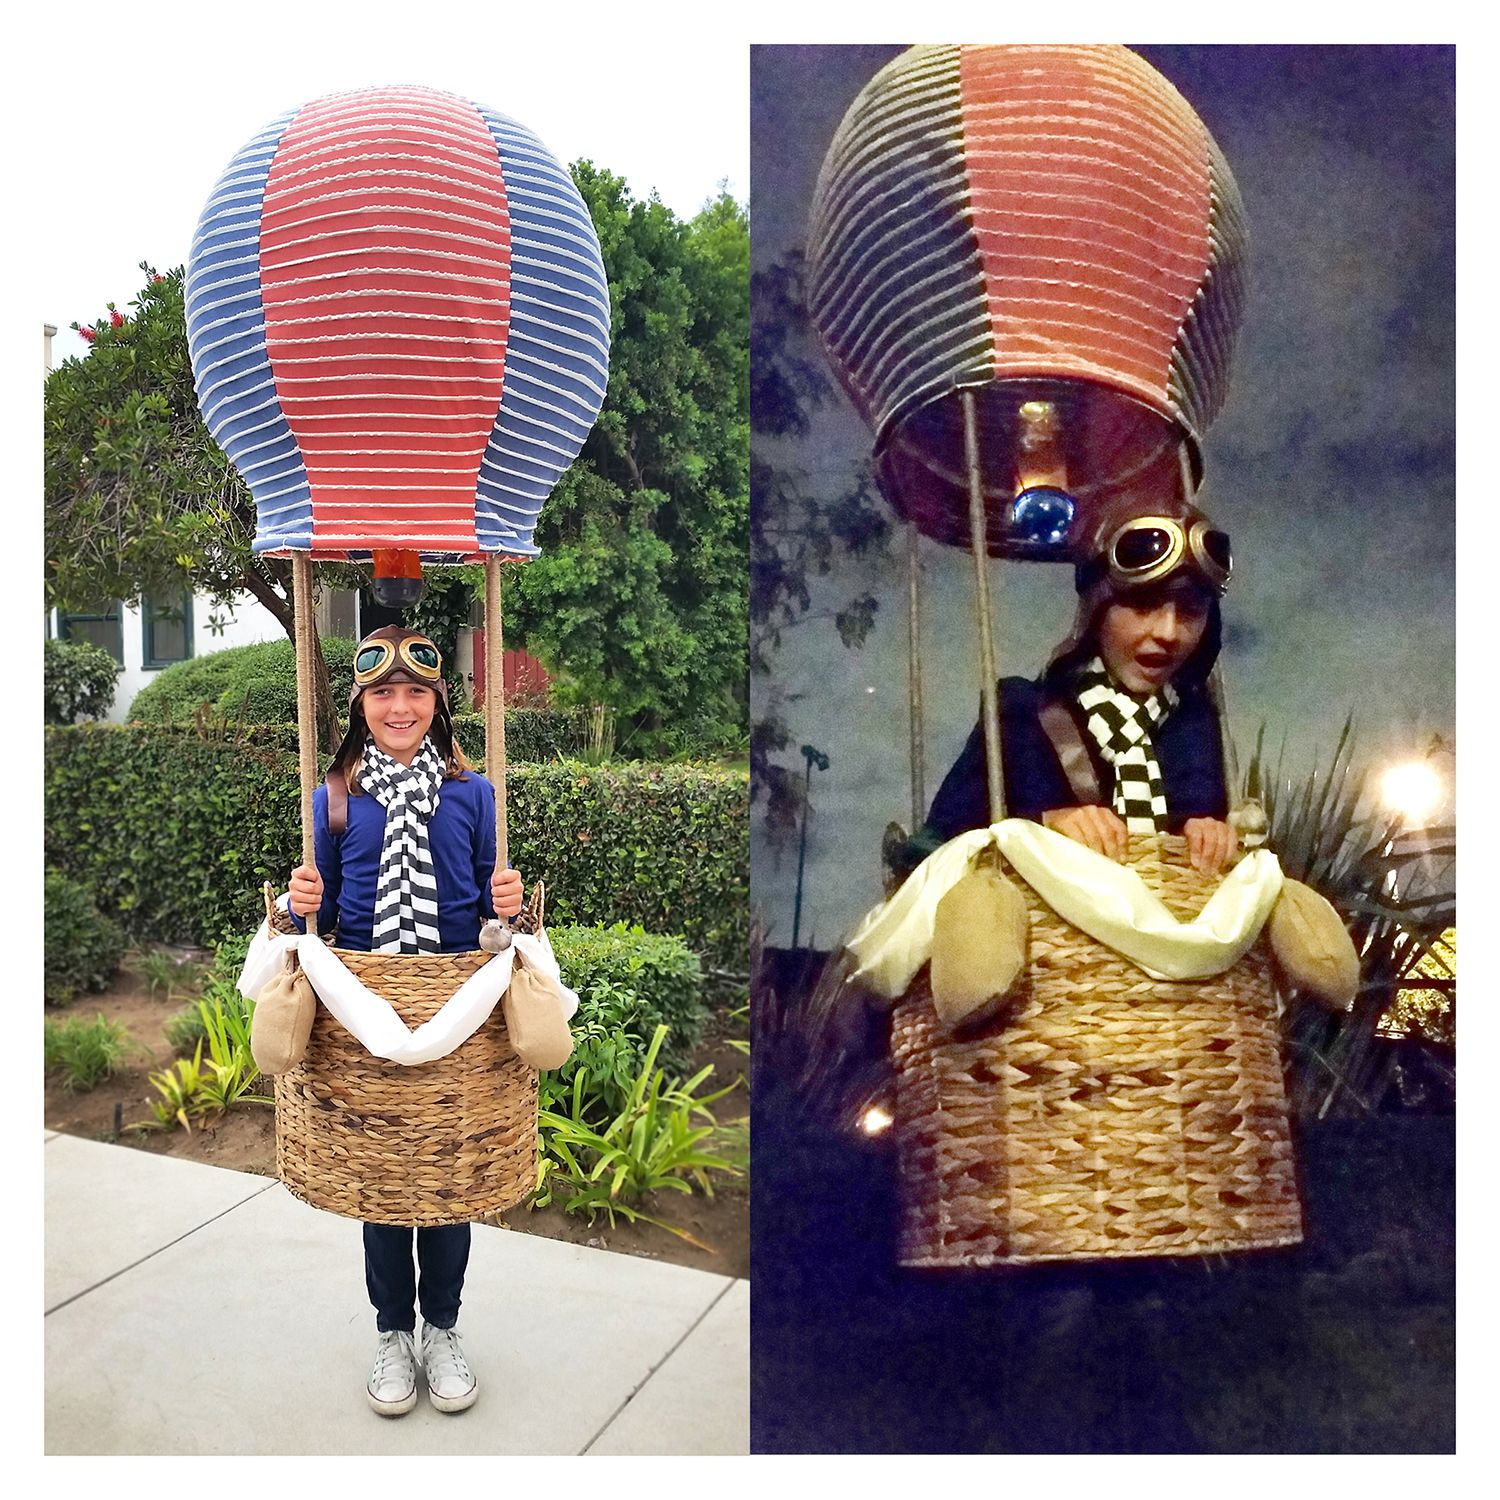 Hot Air Balloon Halloween Costume Balloons, Diy costumes